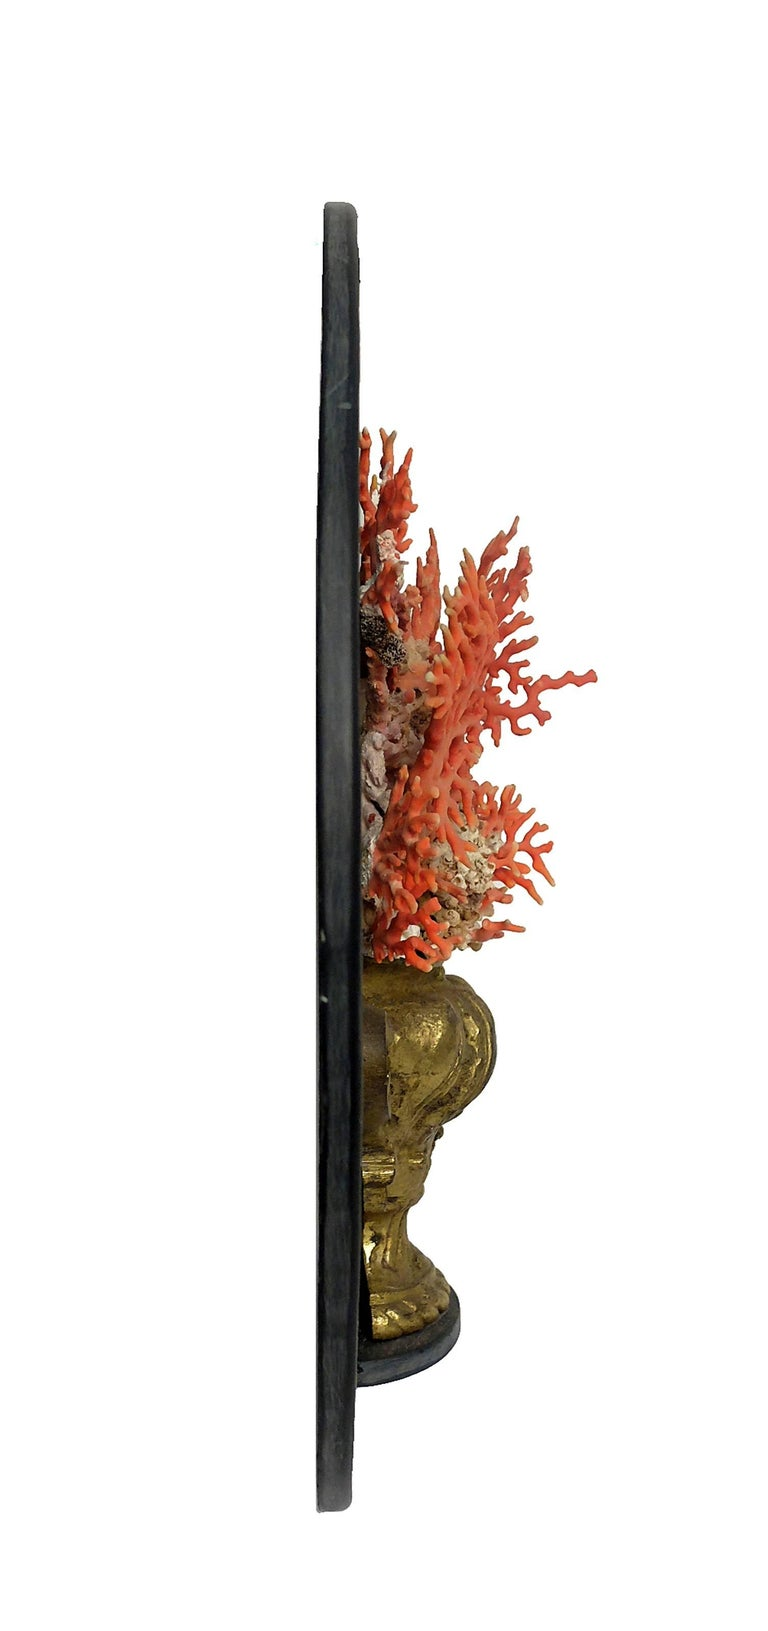 Naturalia Specimen, Branches of Mediterranean Coral, Italy, 1850 In Good Condition For Sale In Milan, IT